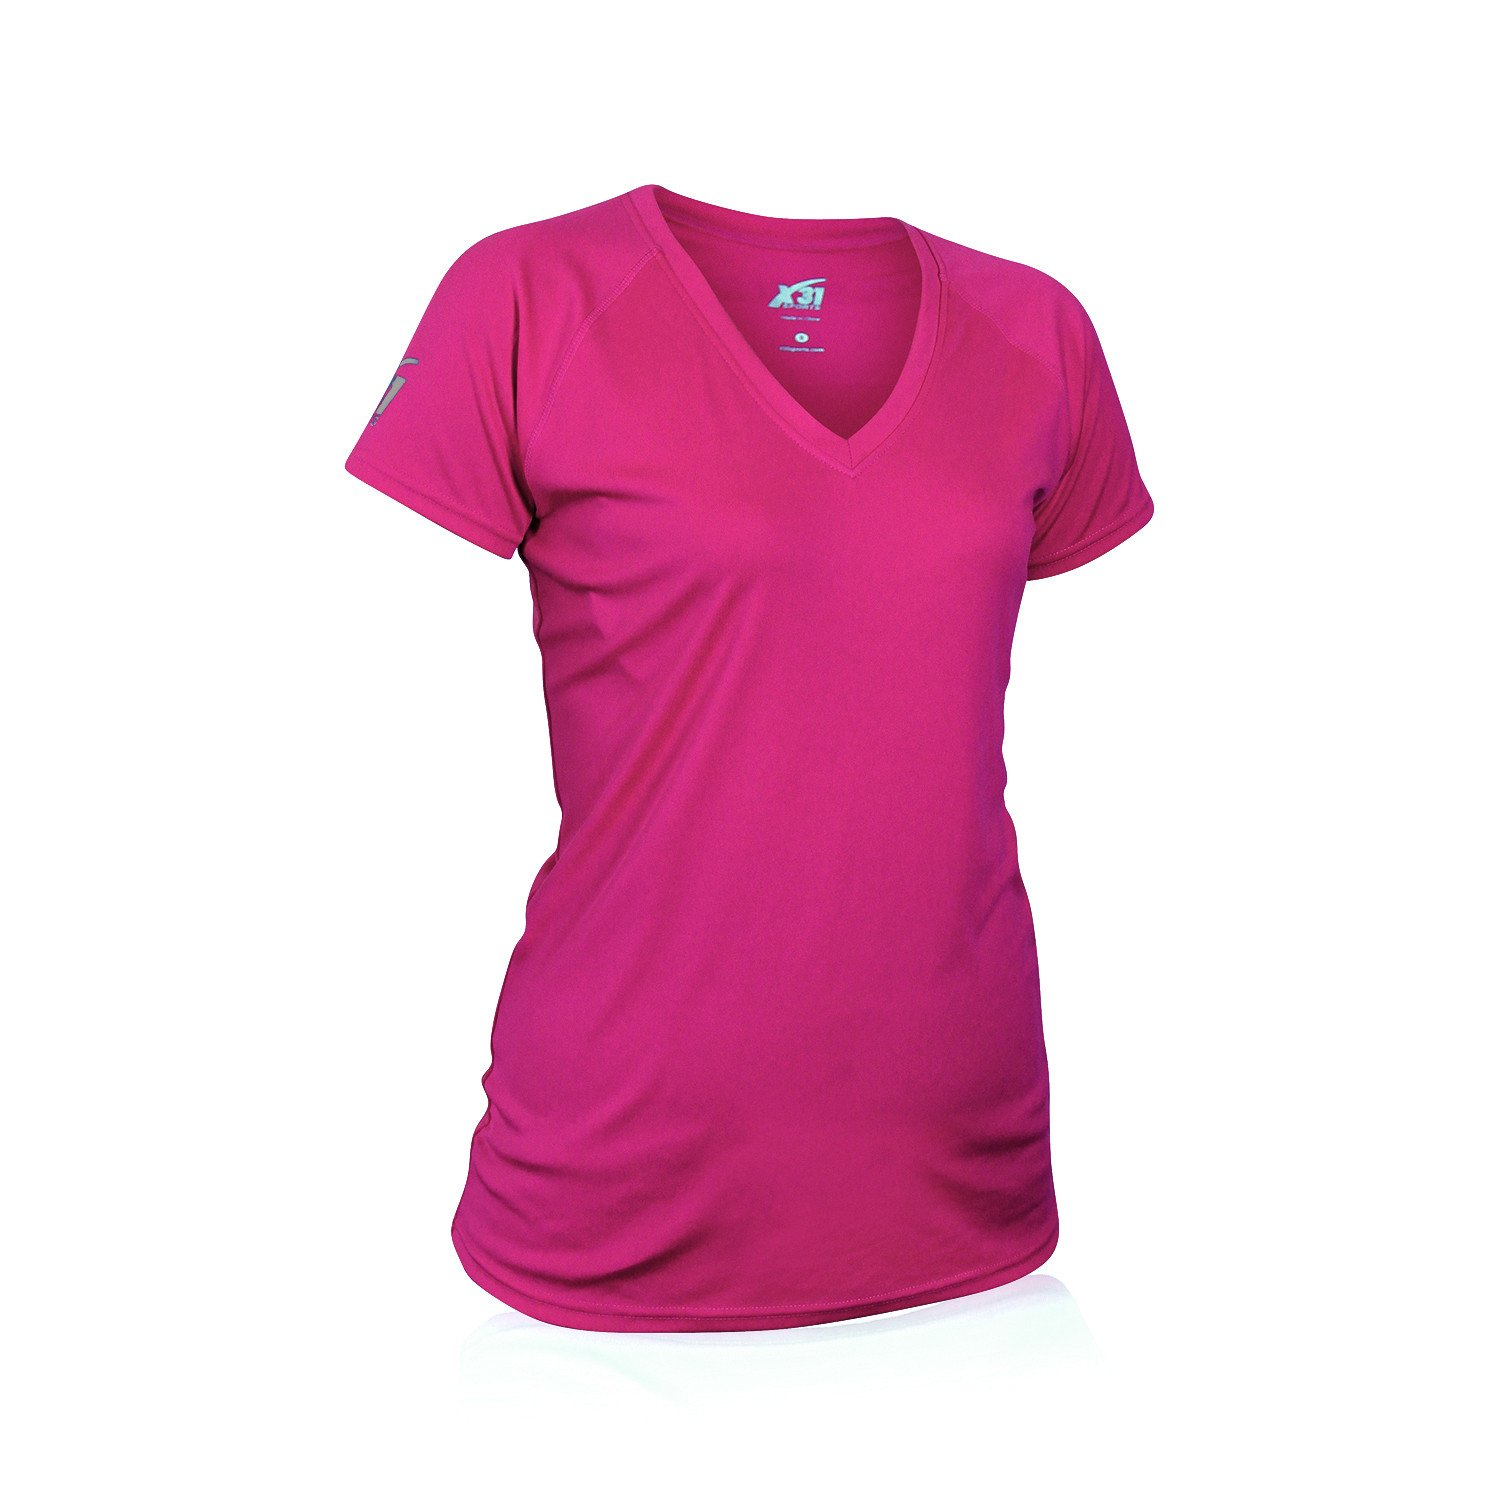 932c38bef26d3f Top 10 wholesale Cut Out Workout Shirts - Chinabrands.com